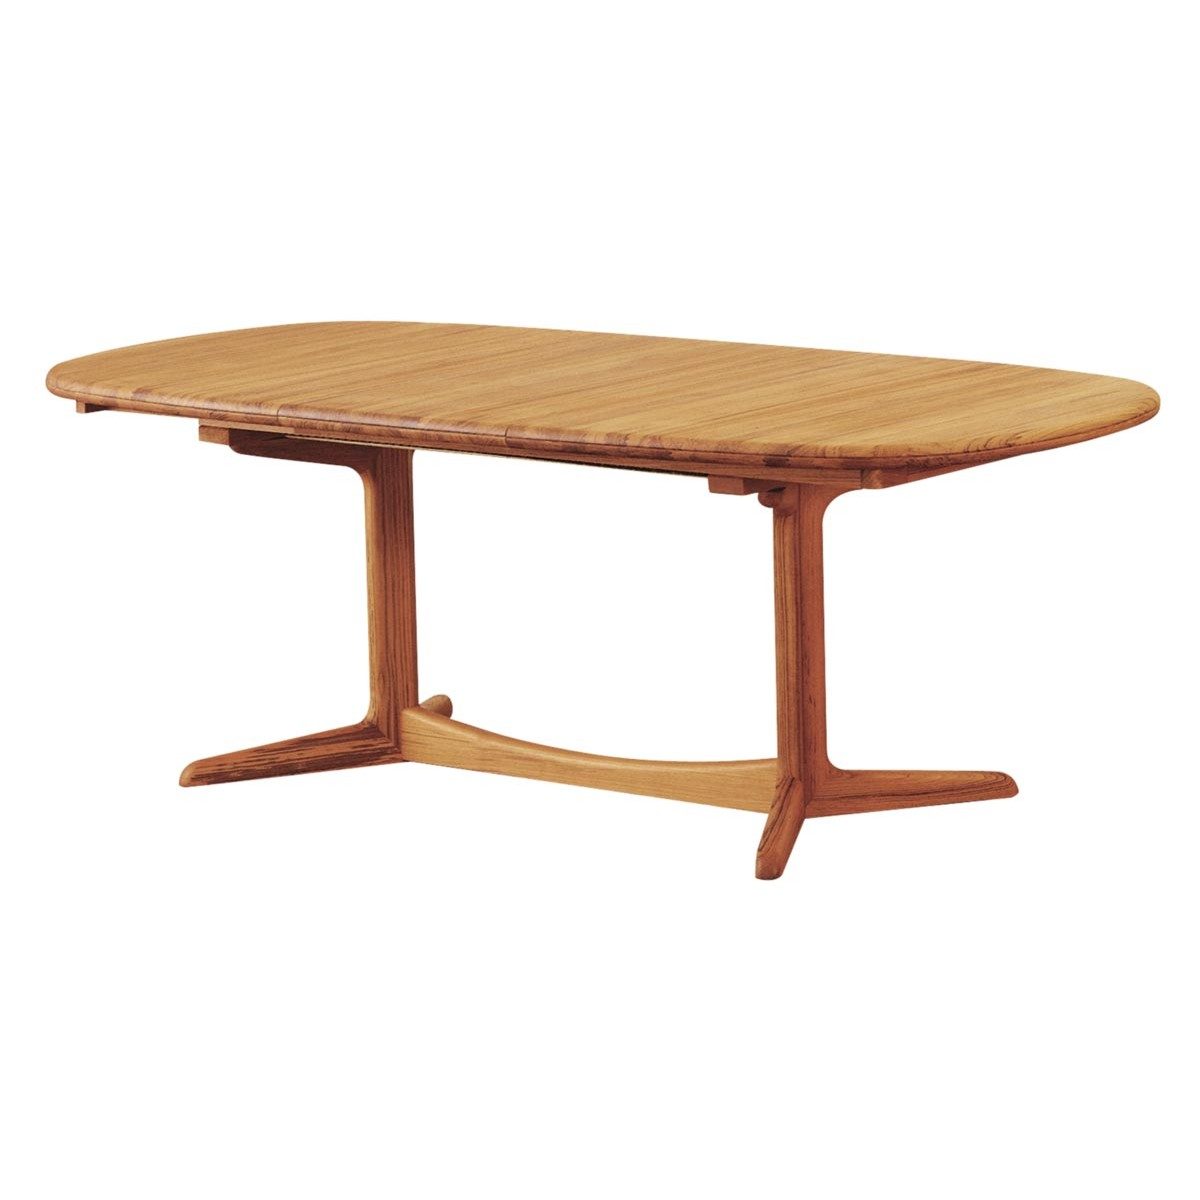 Sun Dining Table BL From By Sun Cabinet Danco Modern - Teak dining table with leaf